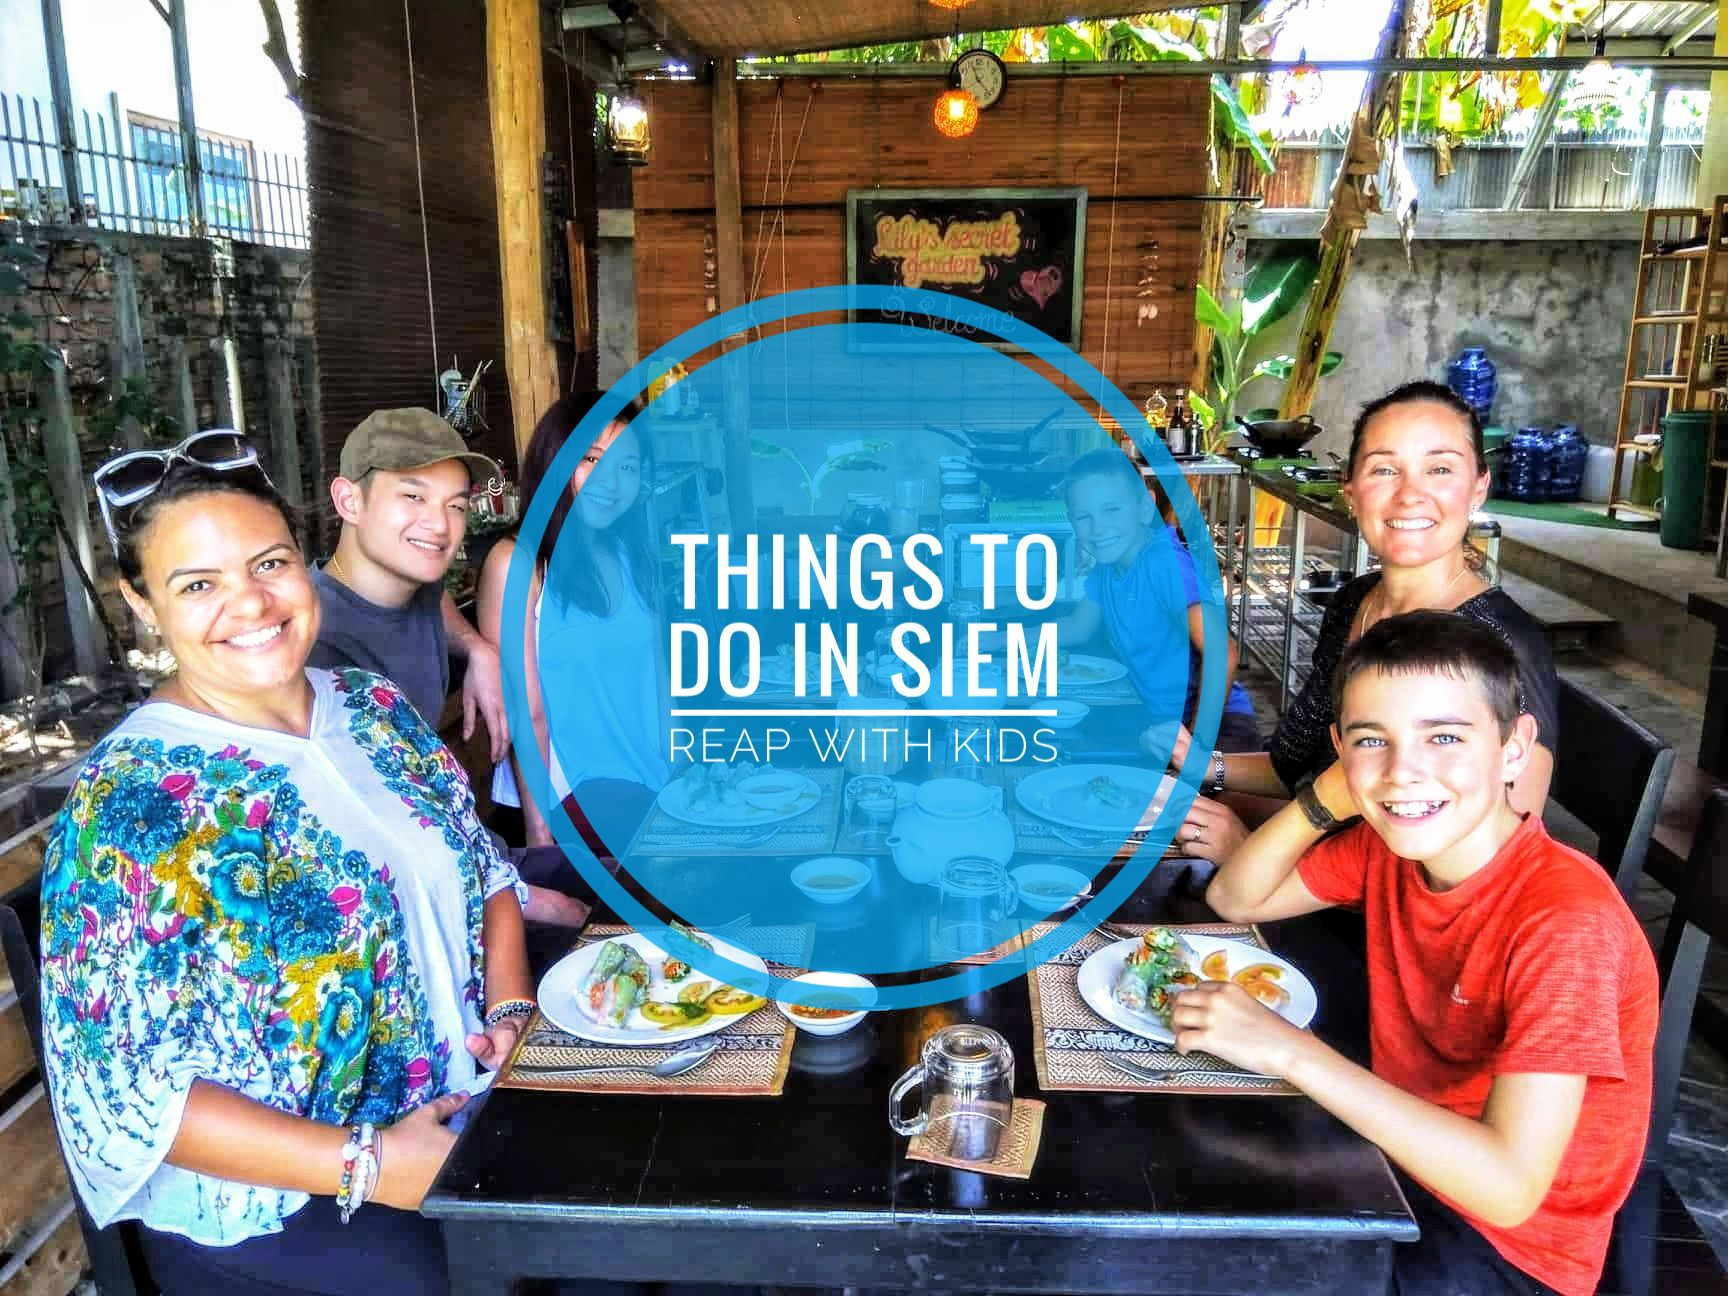 Things to do in Siem Reap (aside from Angkor wat)